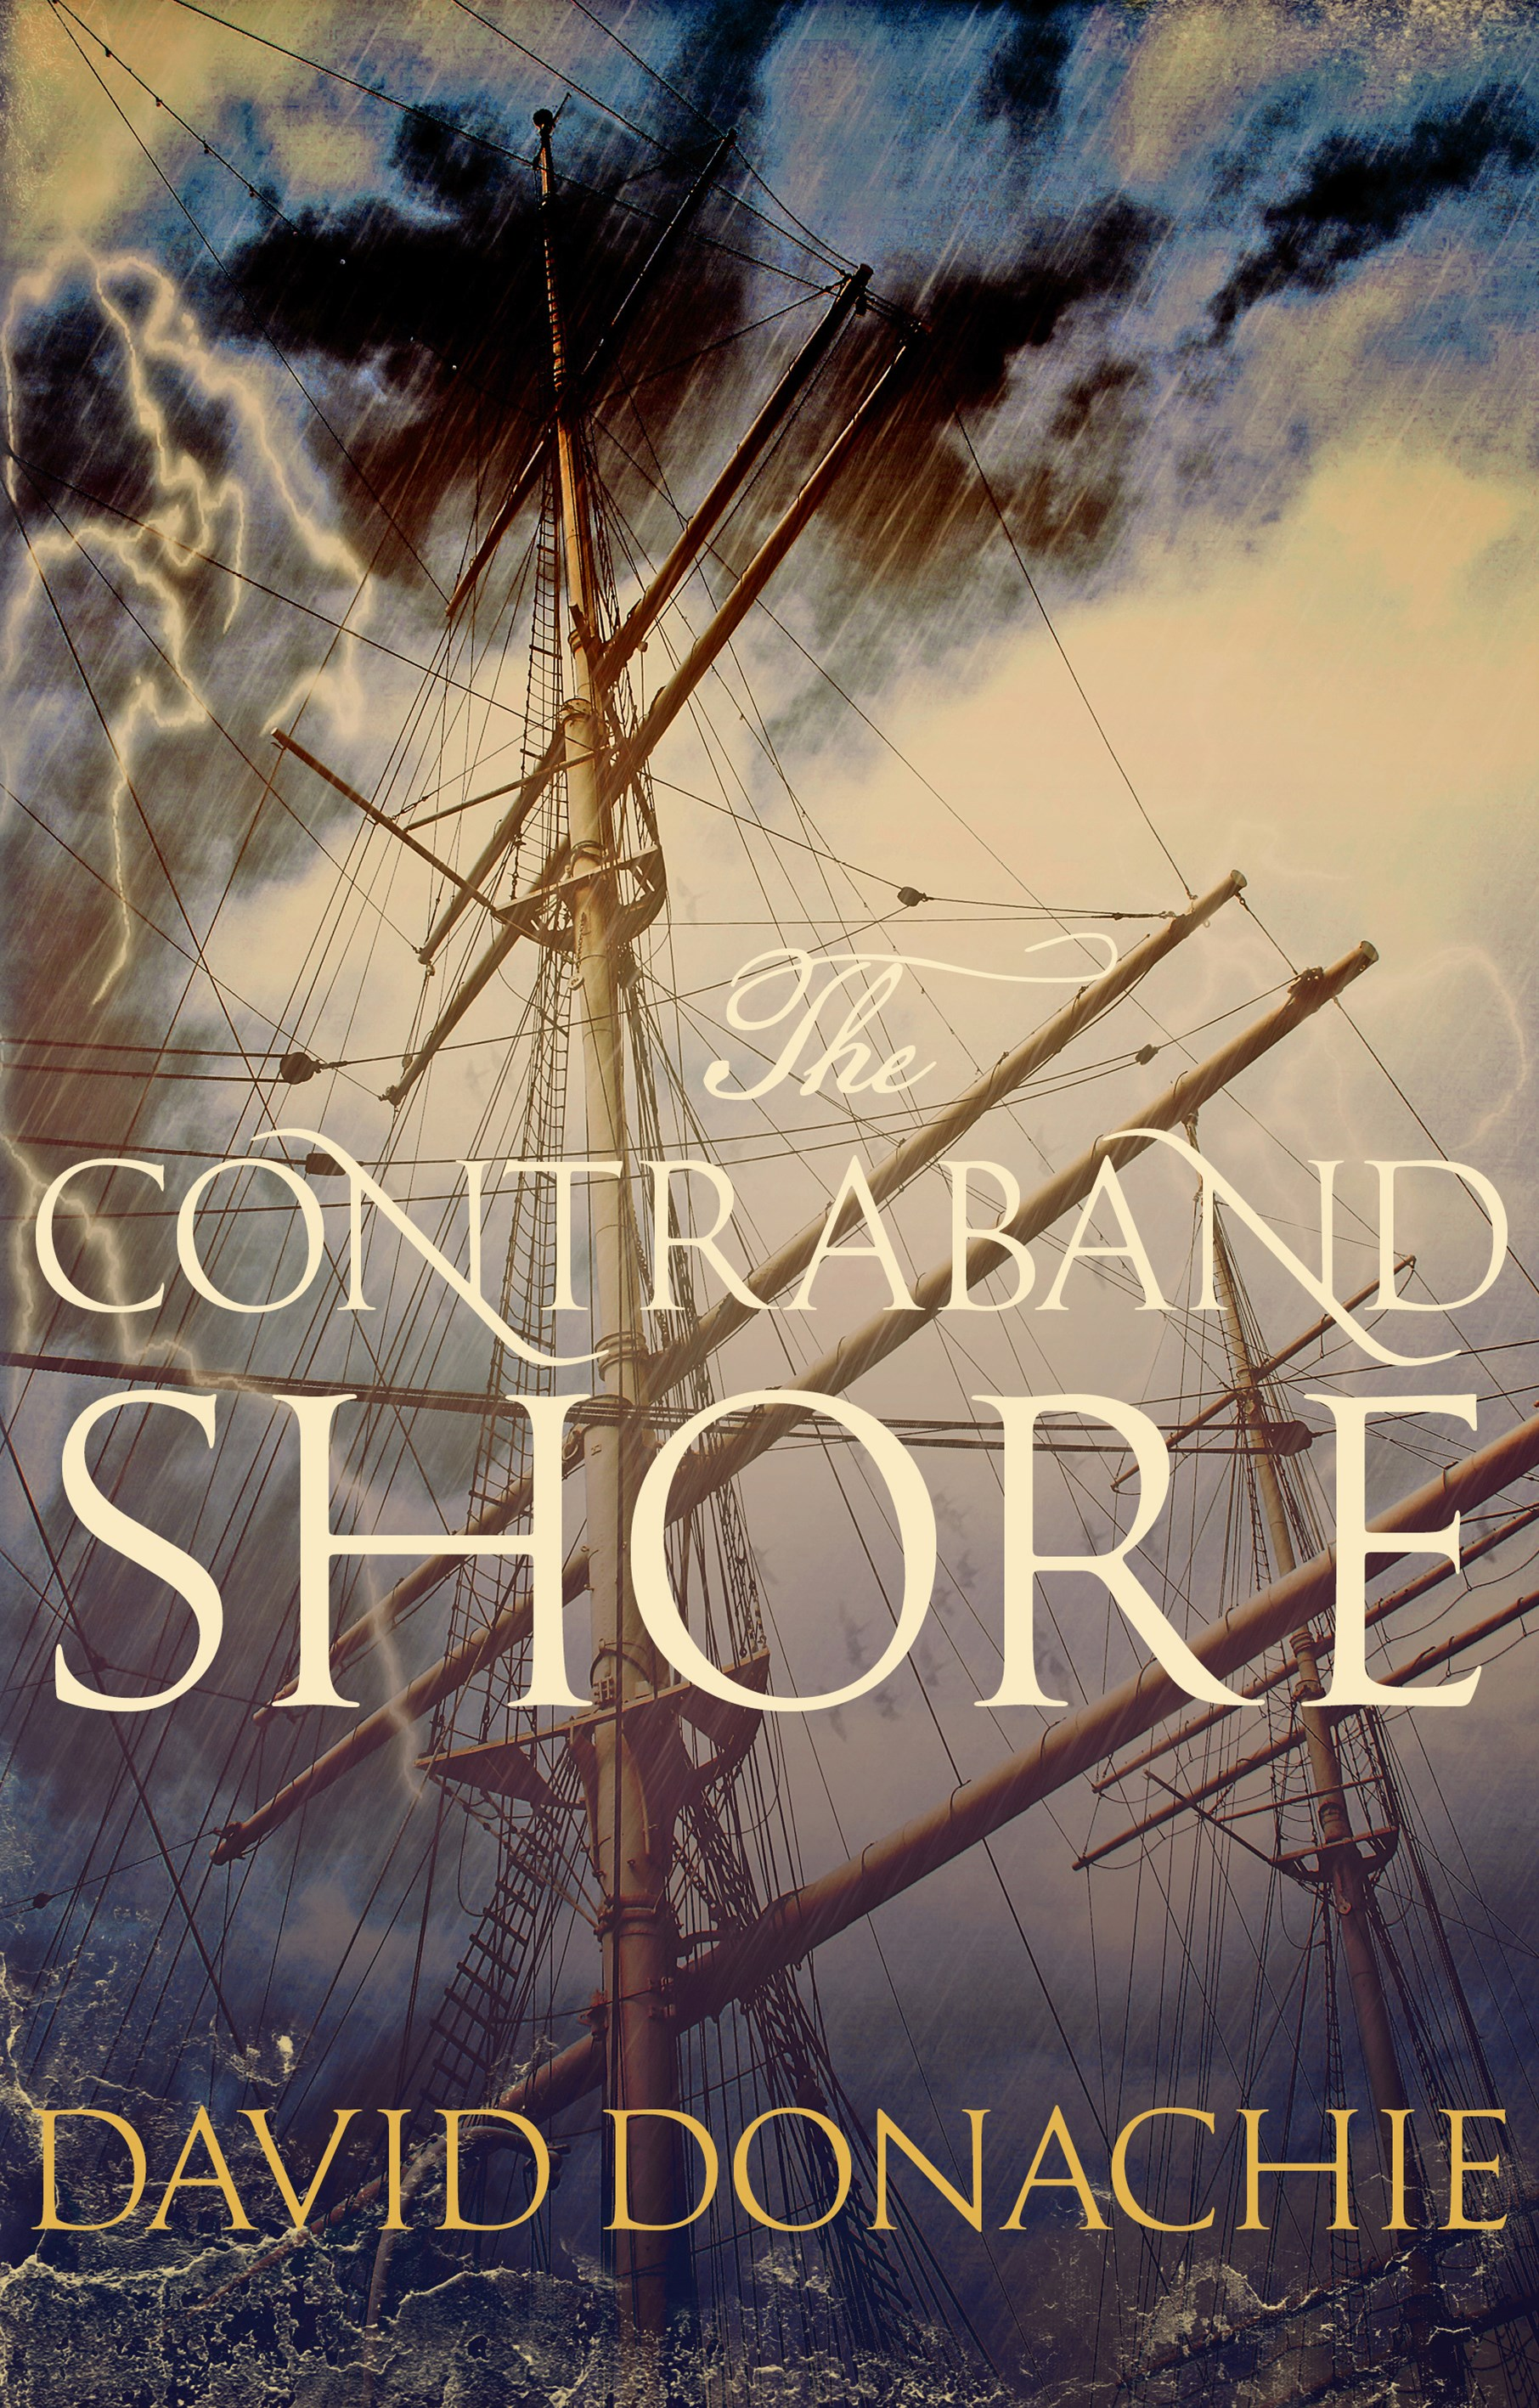 The Contraband Shore